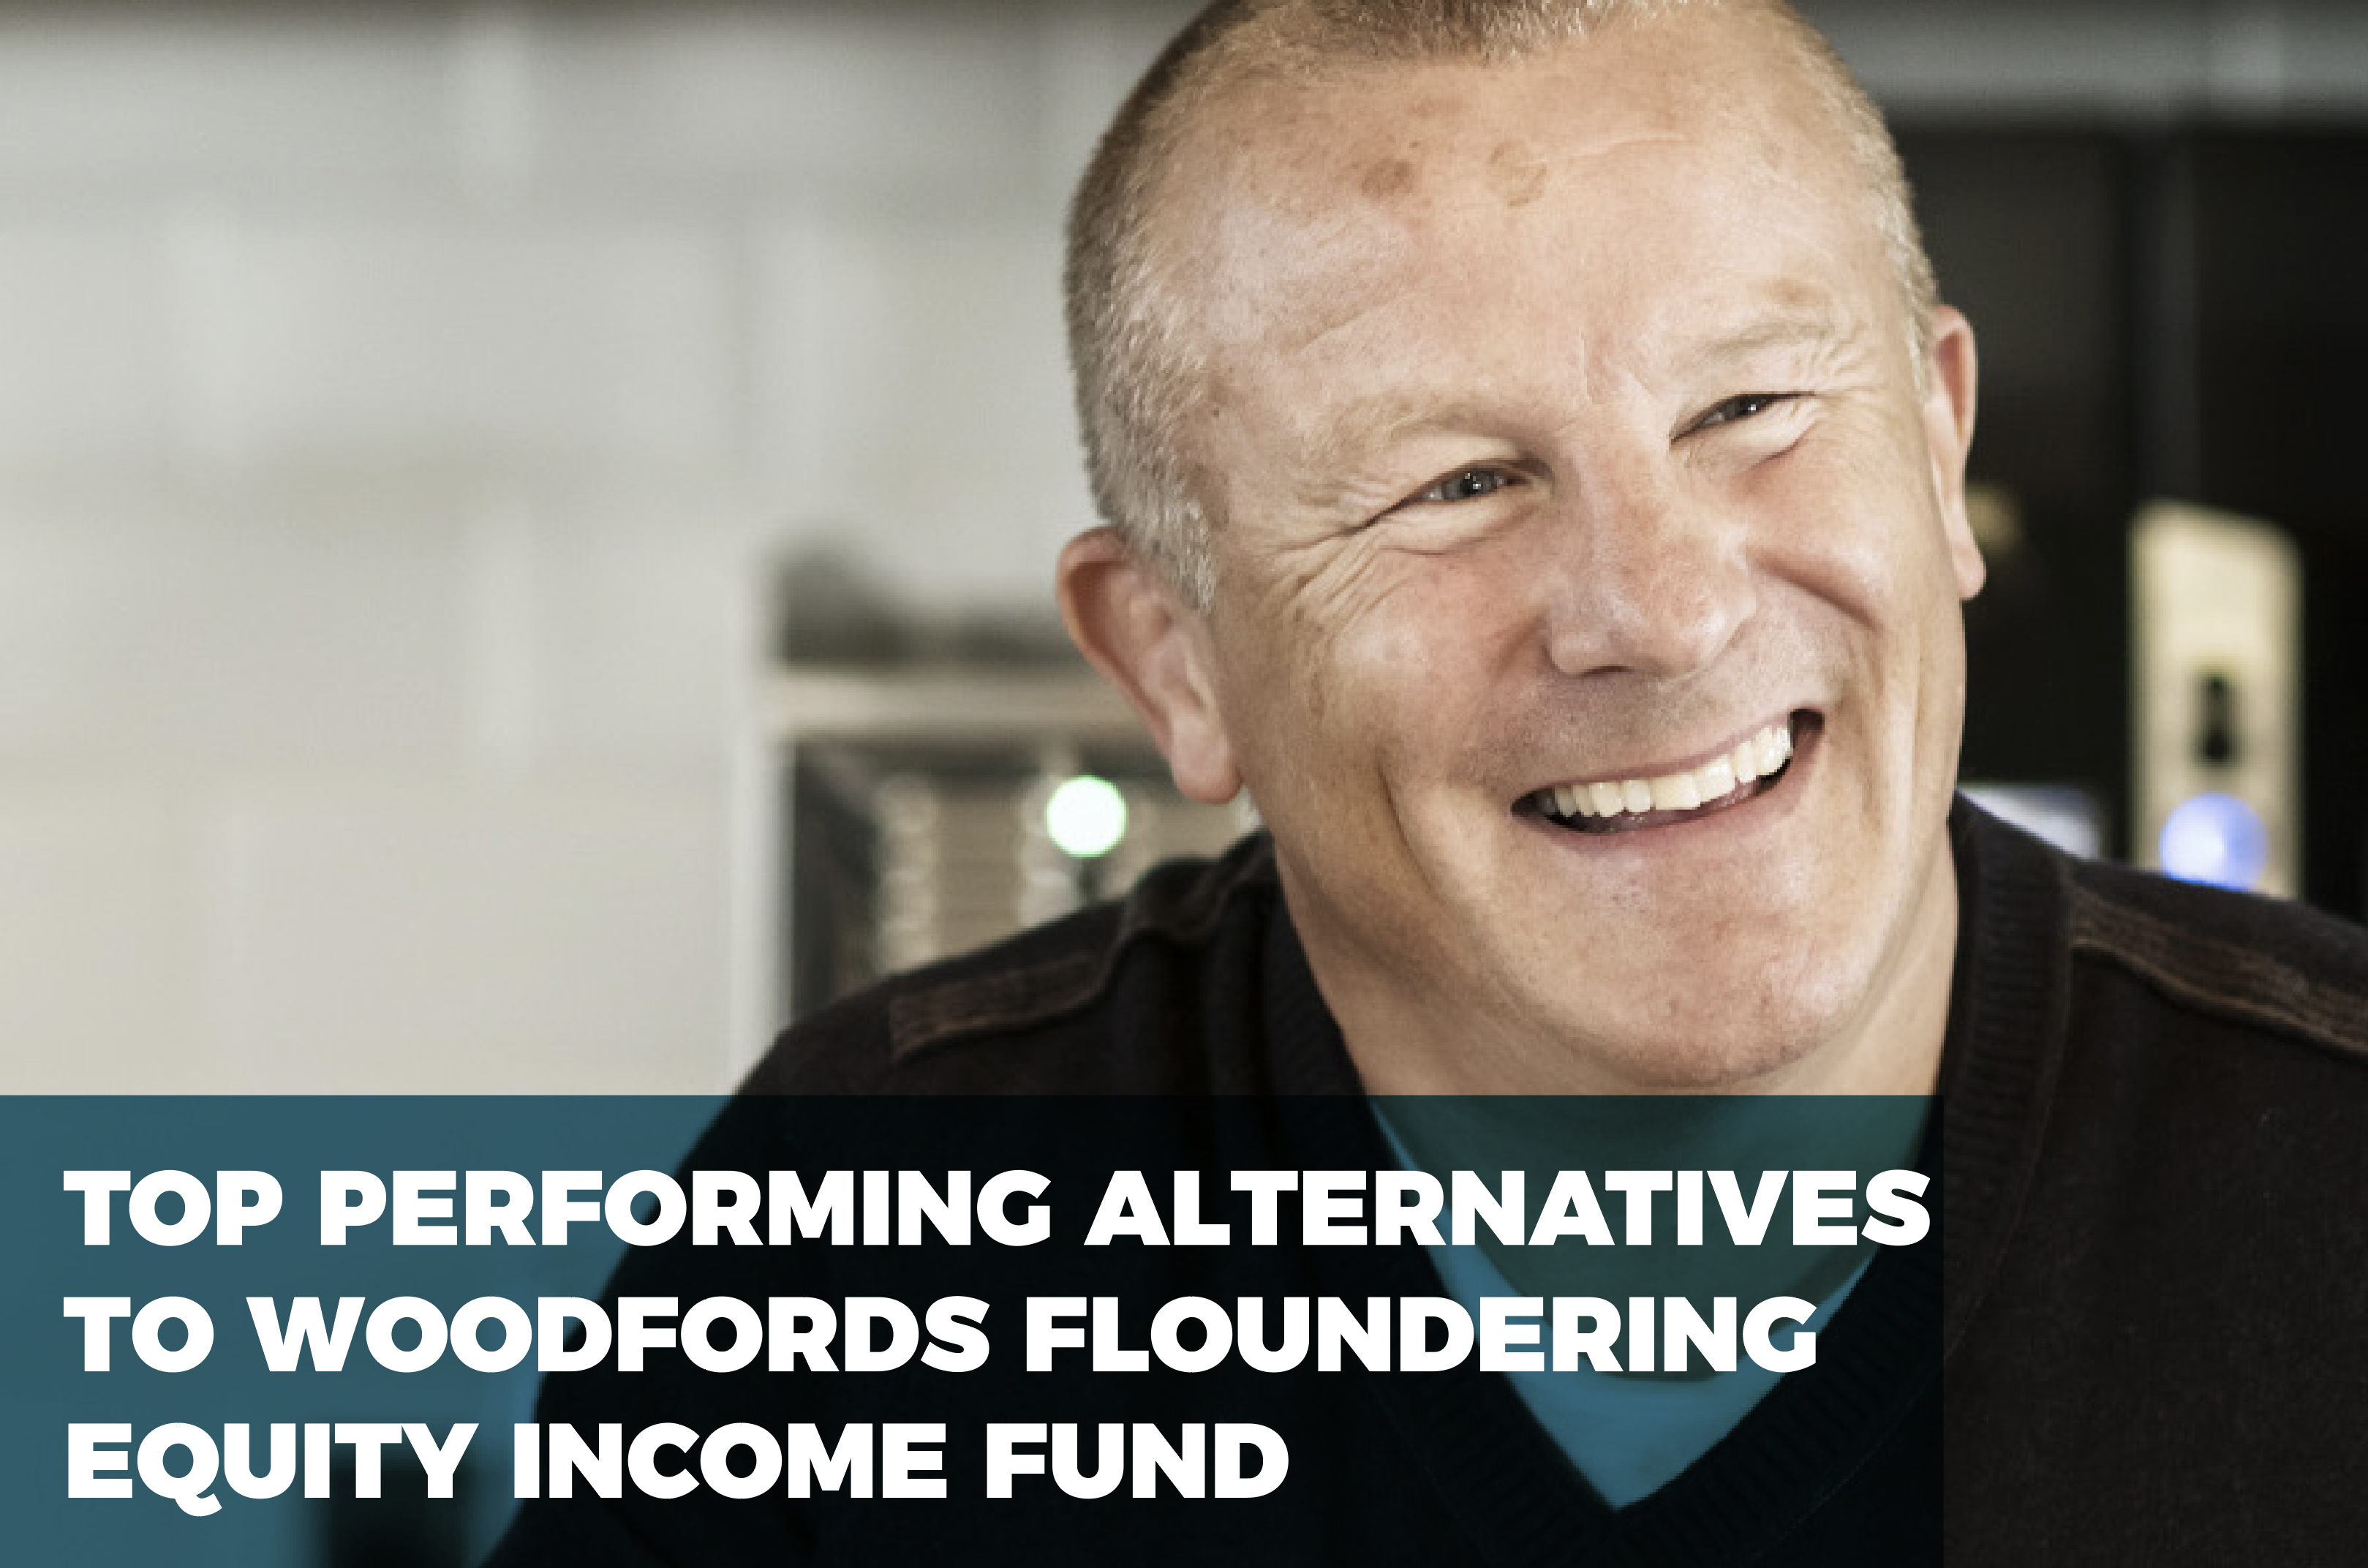 Alternatives to Woodfords equity income fund.png